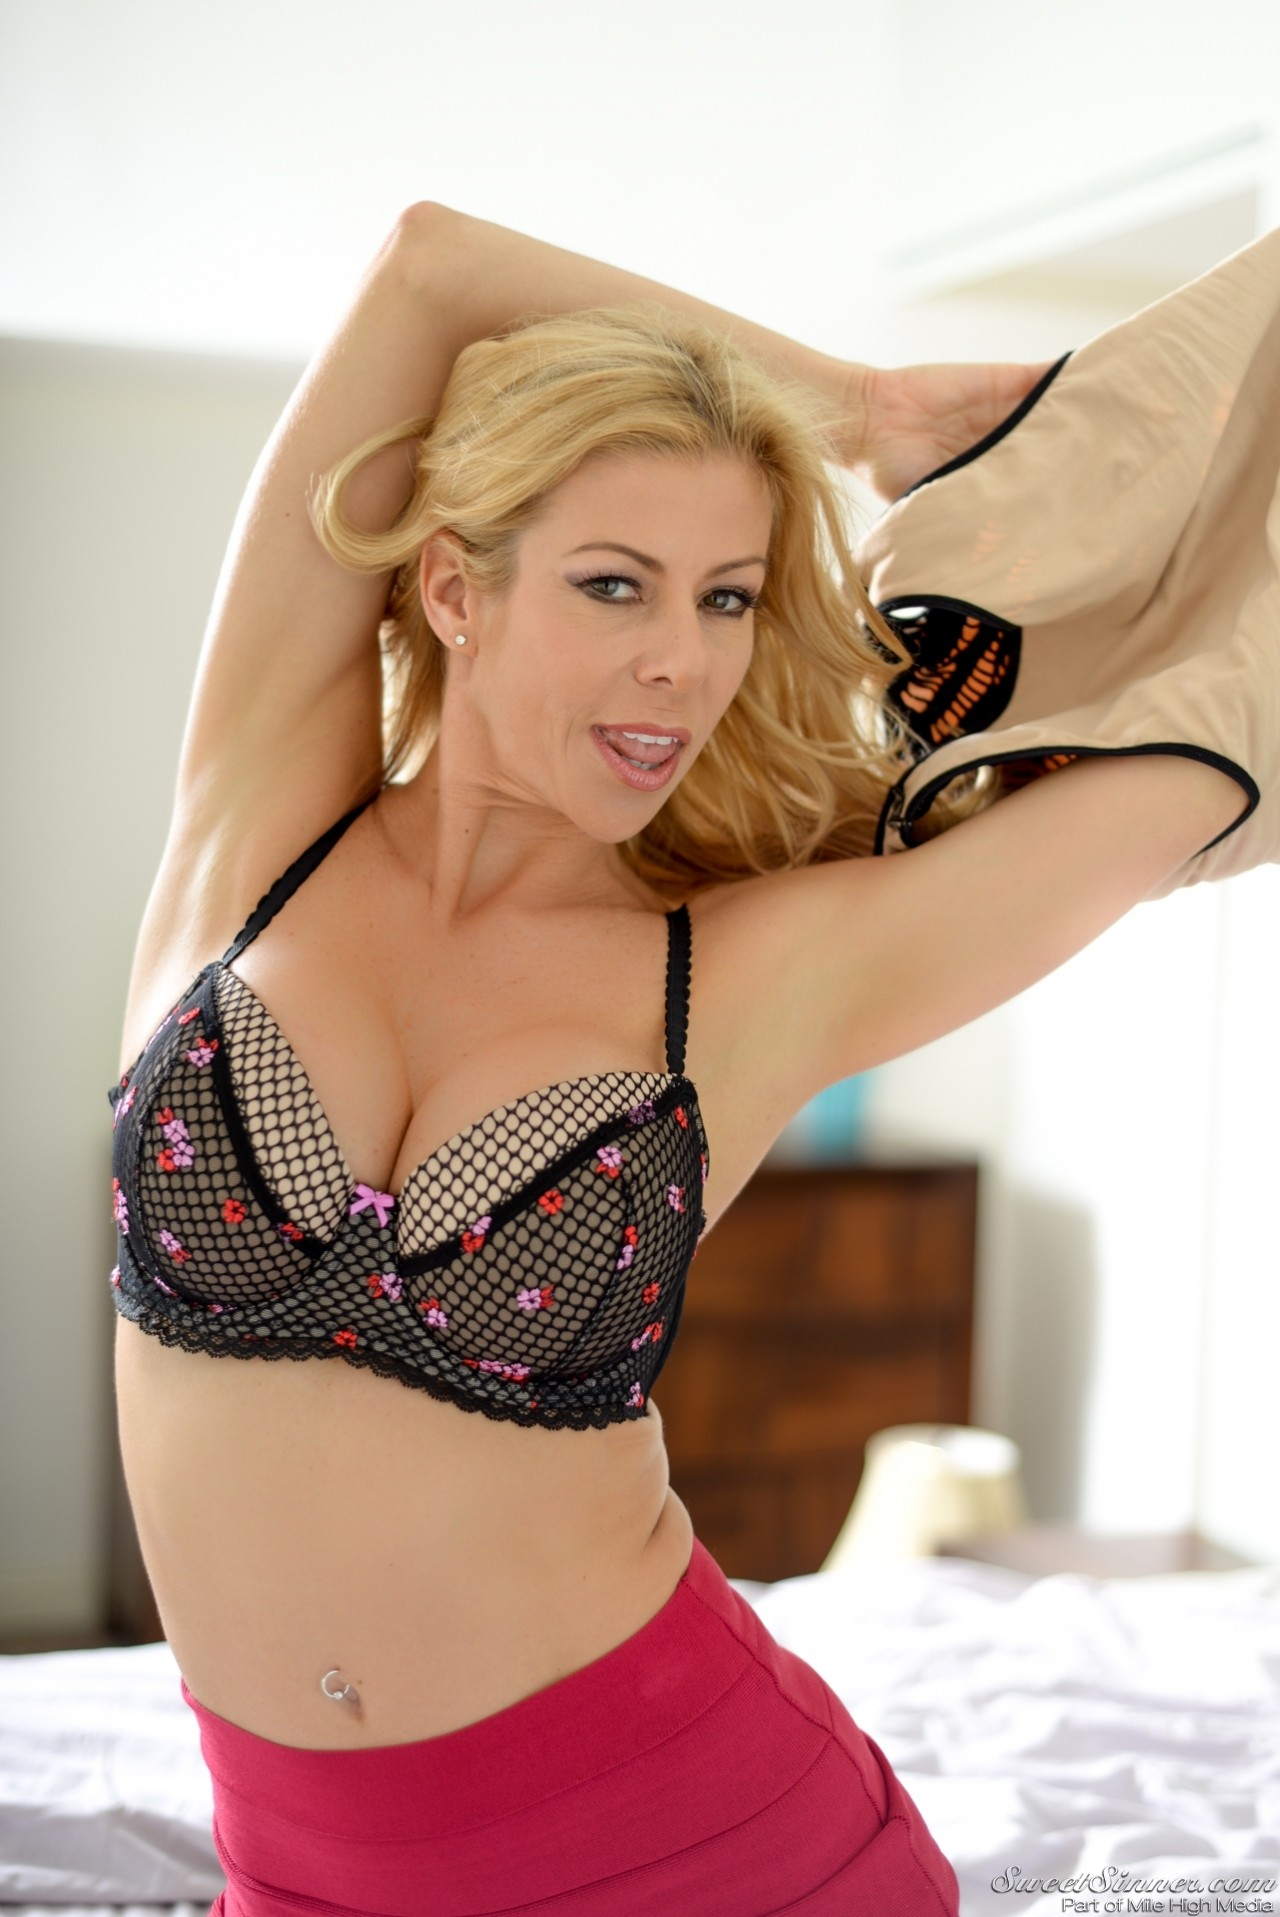 Alexis Fawx - Like Daughter Like Mother 90751-8733